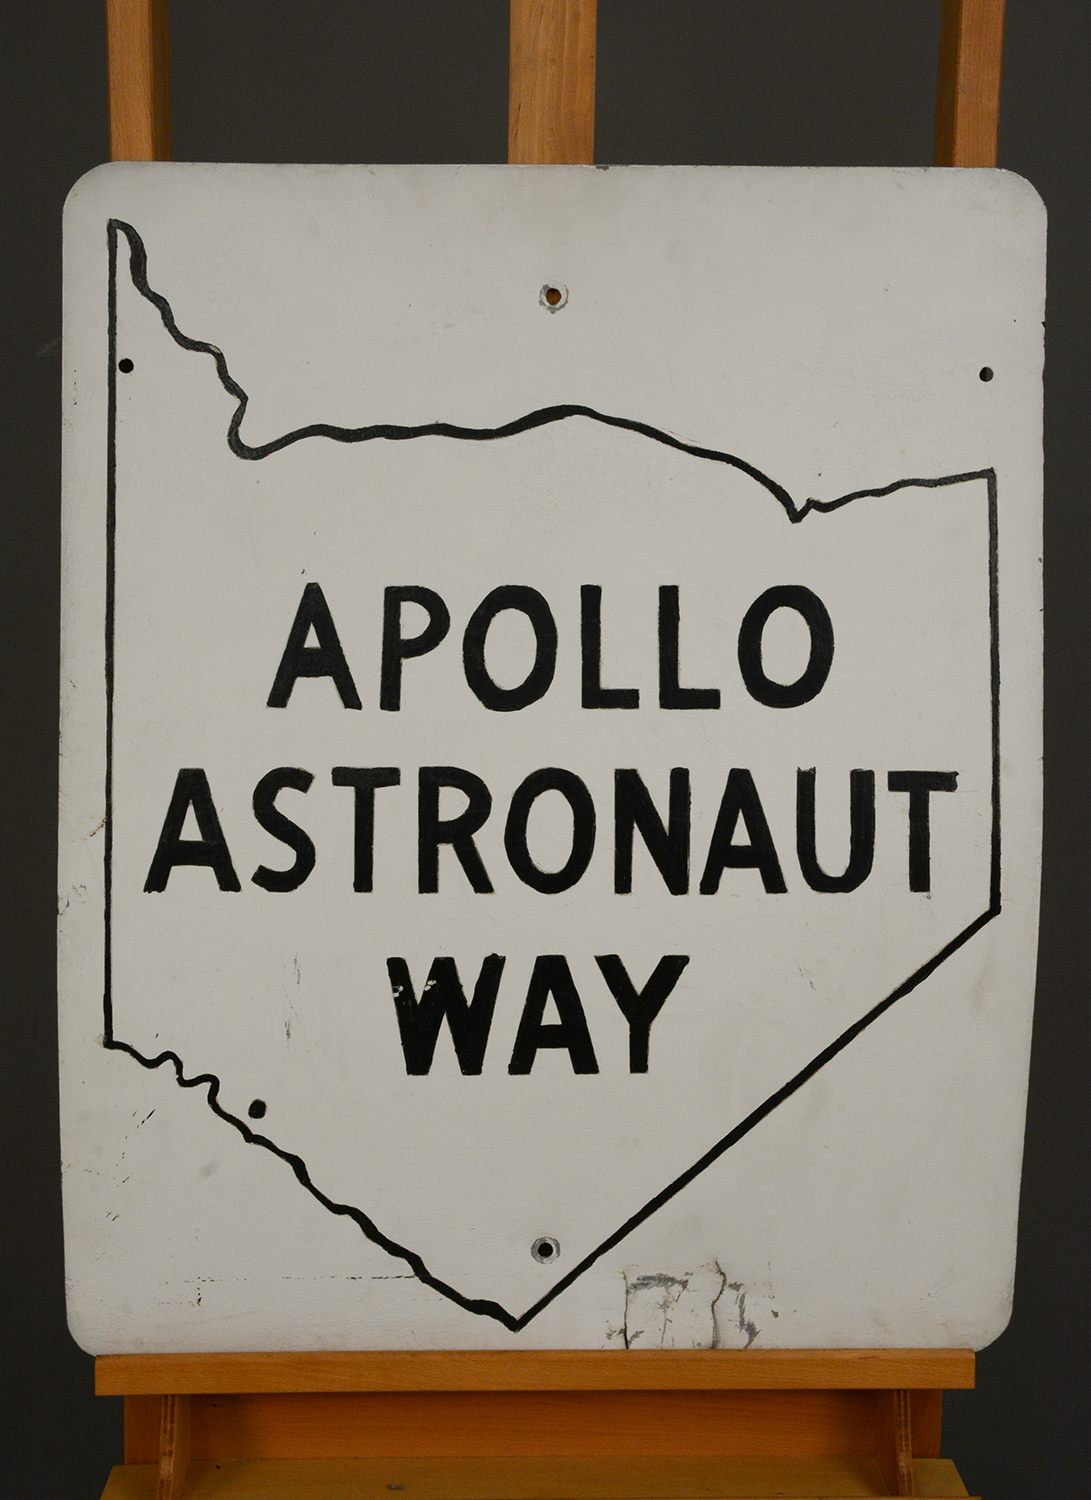 Apollo Astronaut Way road sign, 1970.